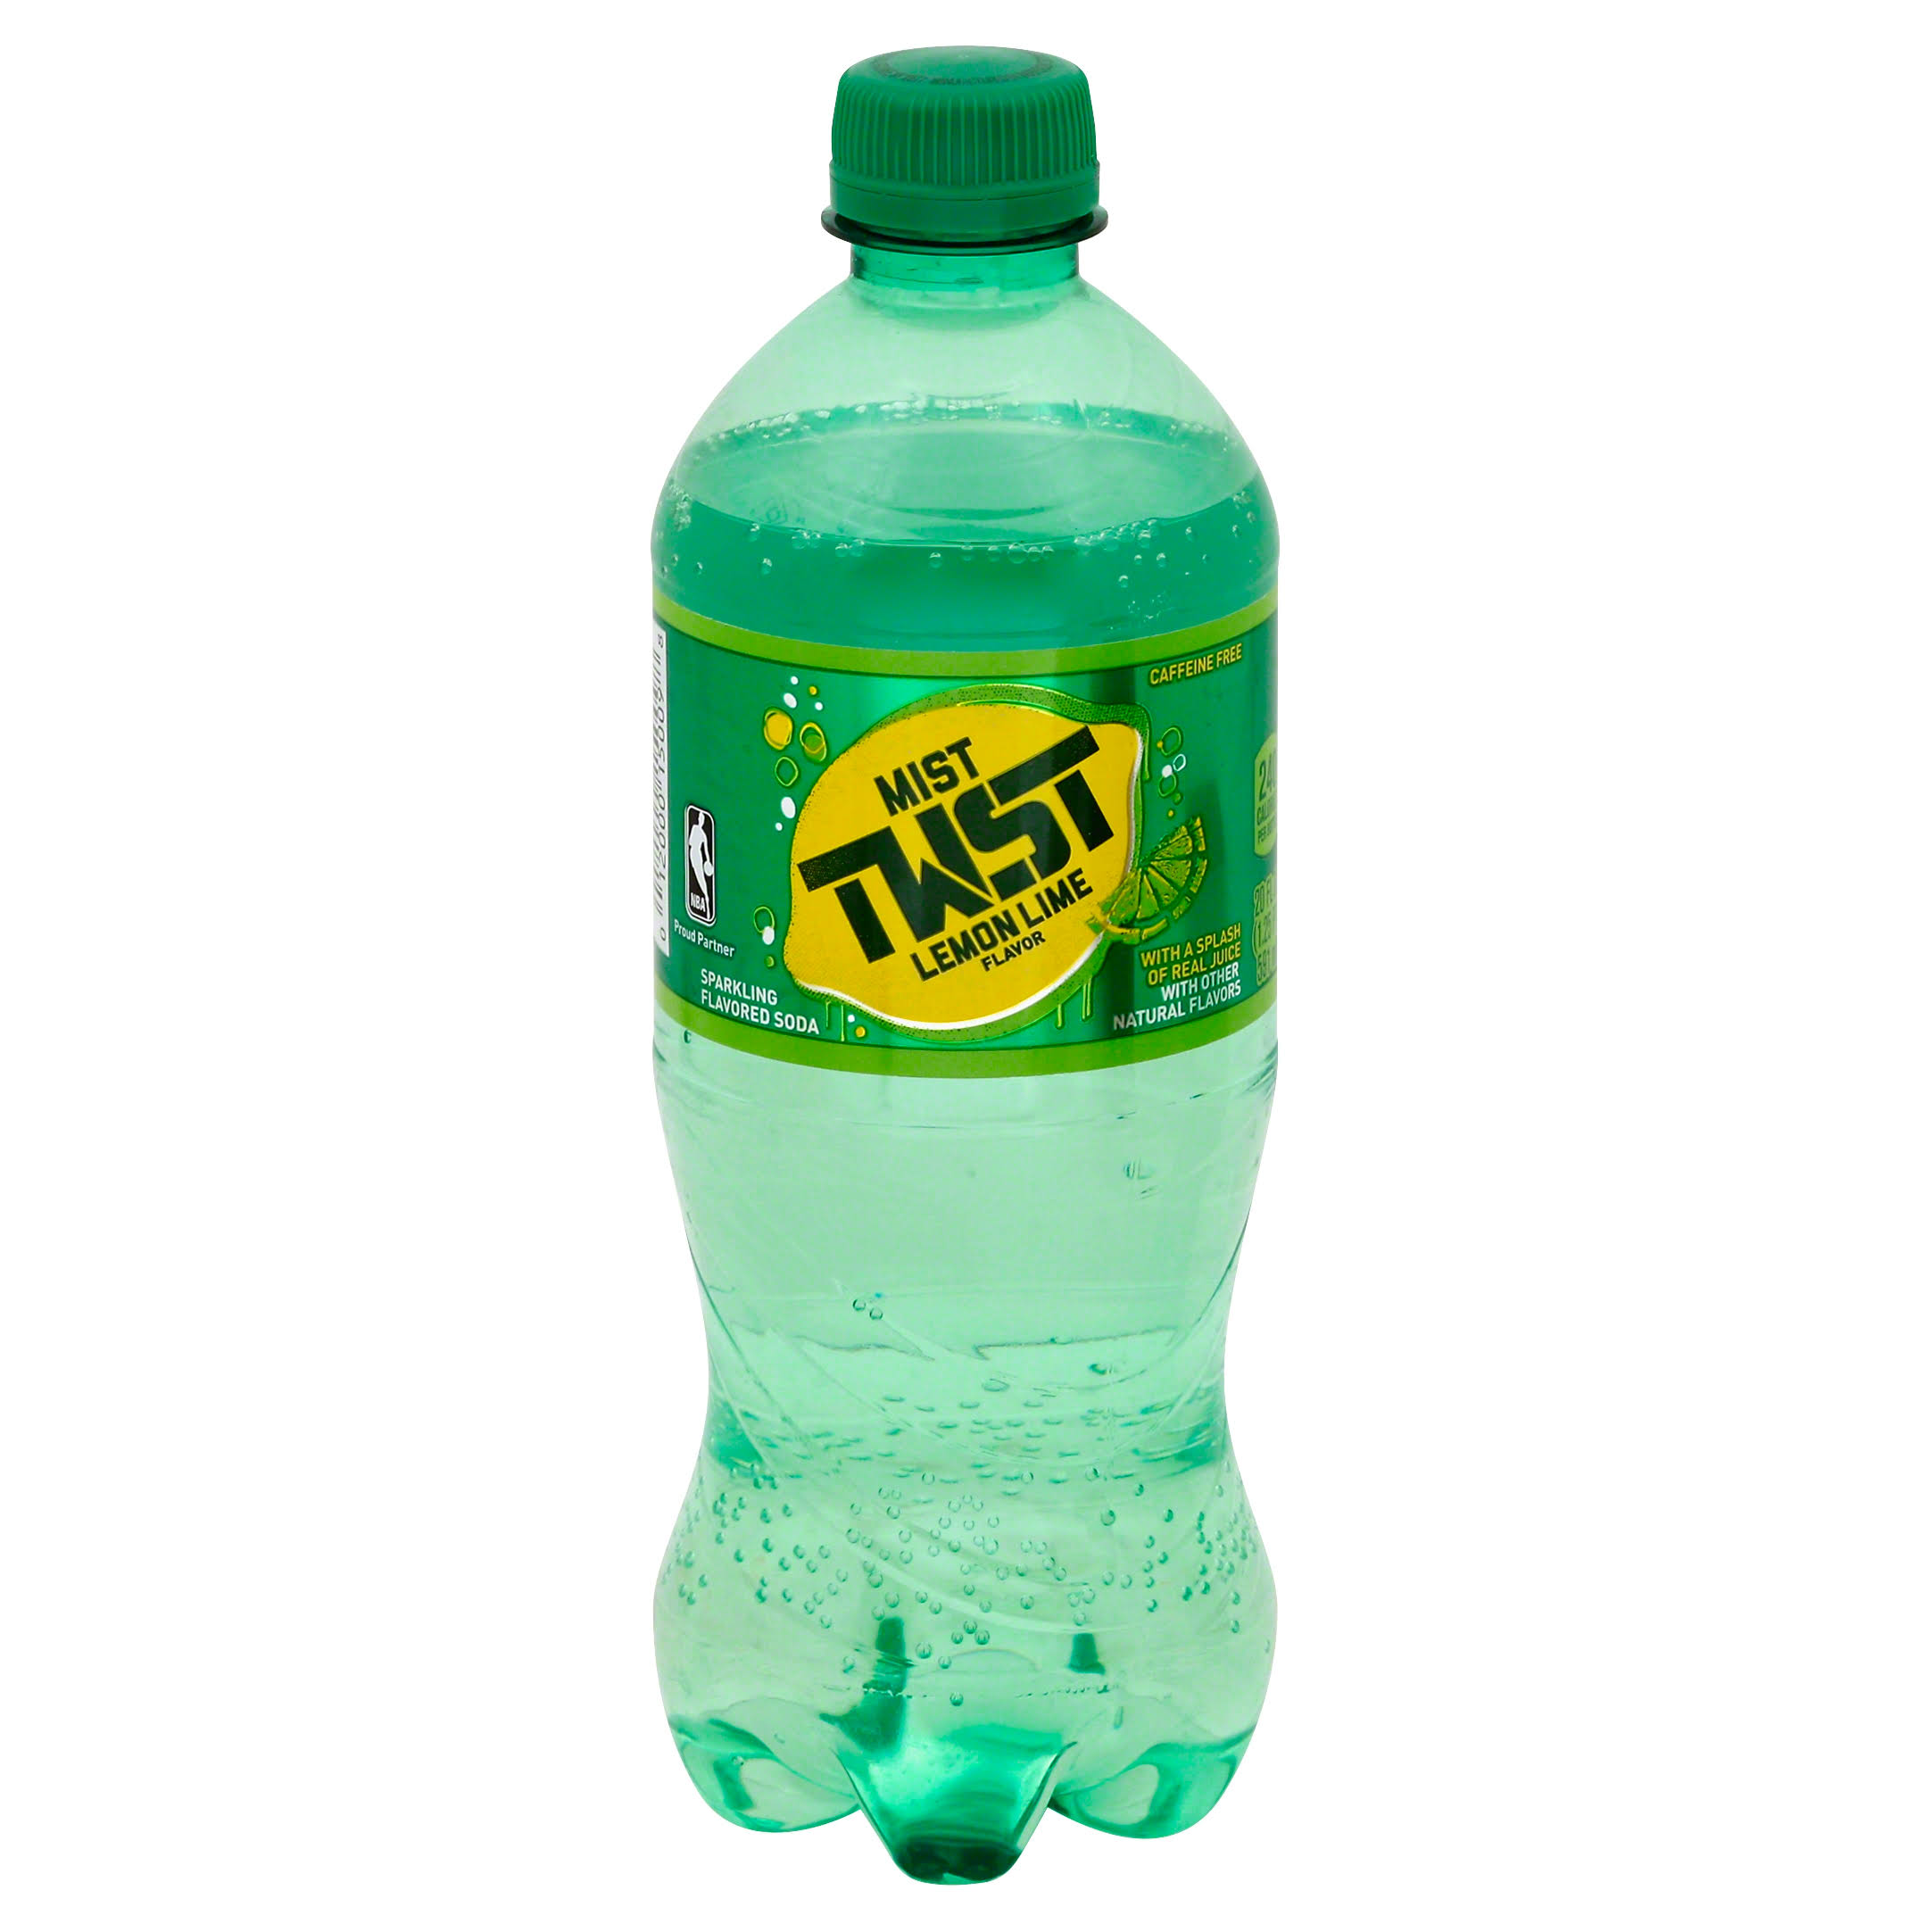 Mist Twst Lemon Lime Flavor Soda - 20oz